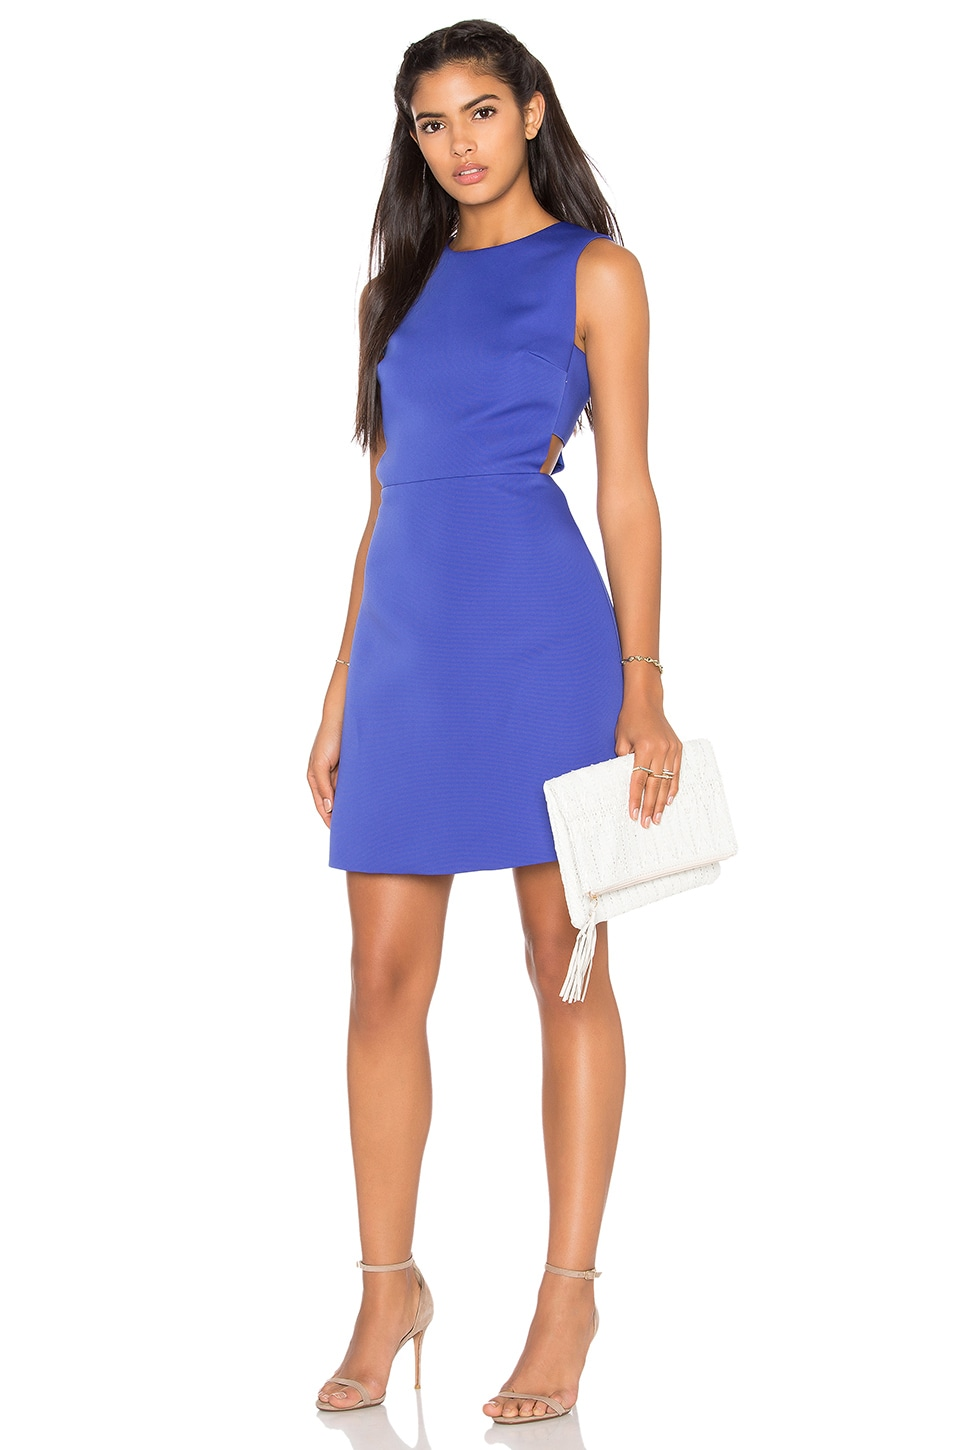 kate spade new york Cutout A Line Dress in Indigo Ink